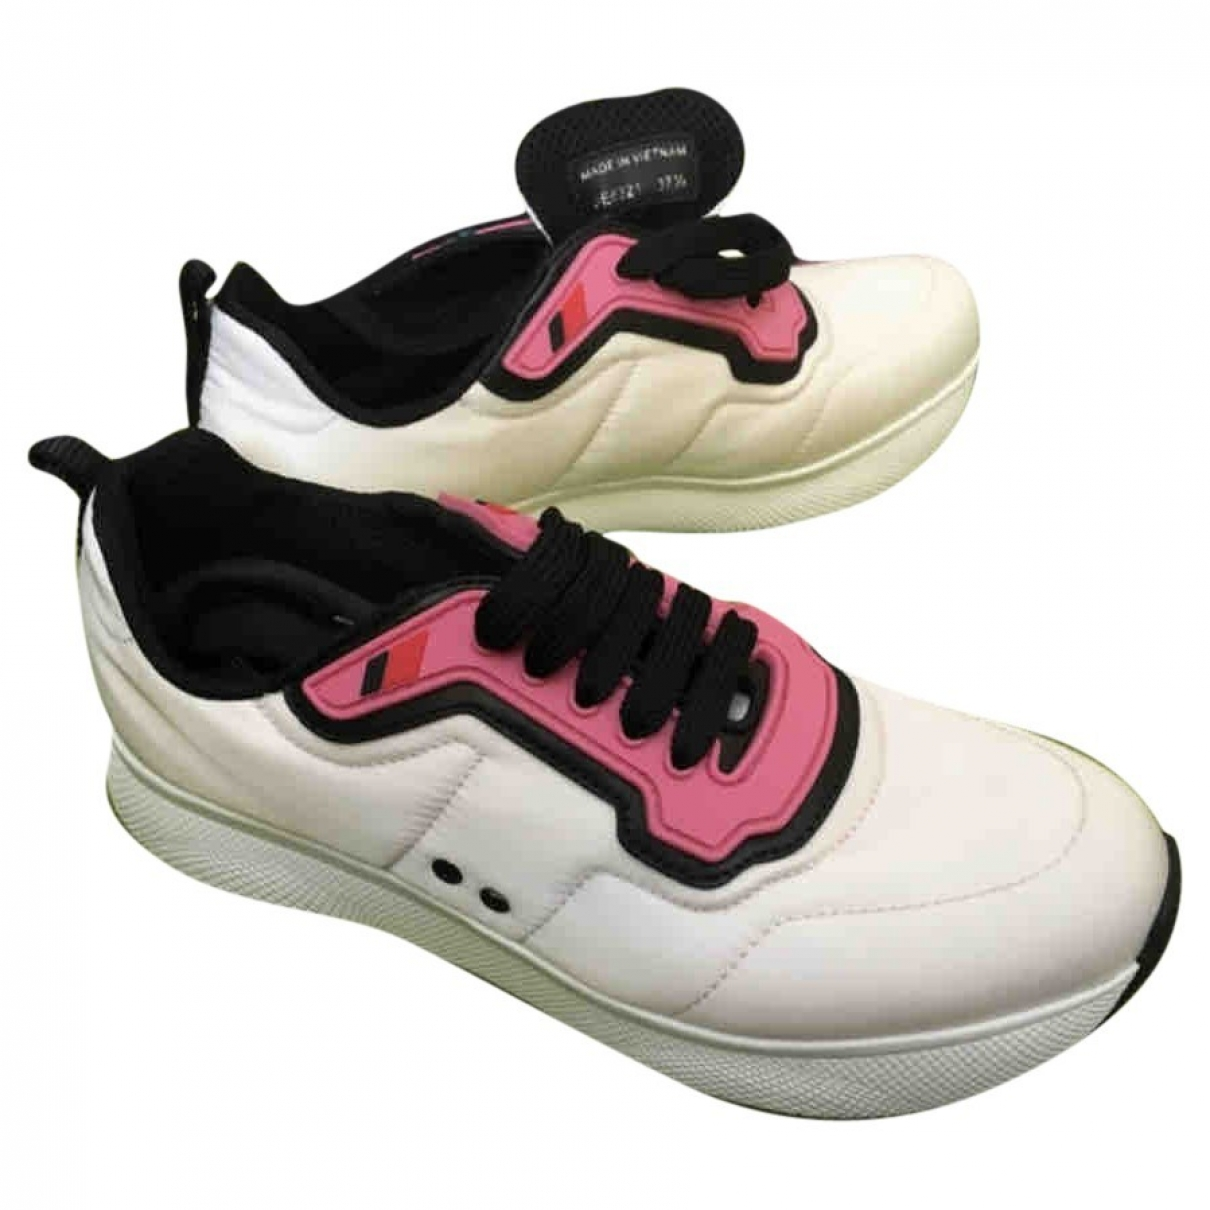 Prada \N Sneakers in  Weiss Leinen